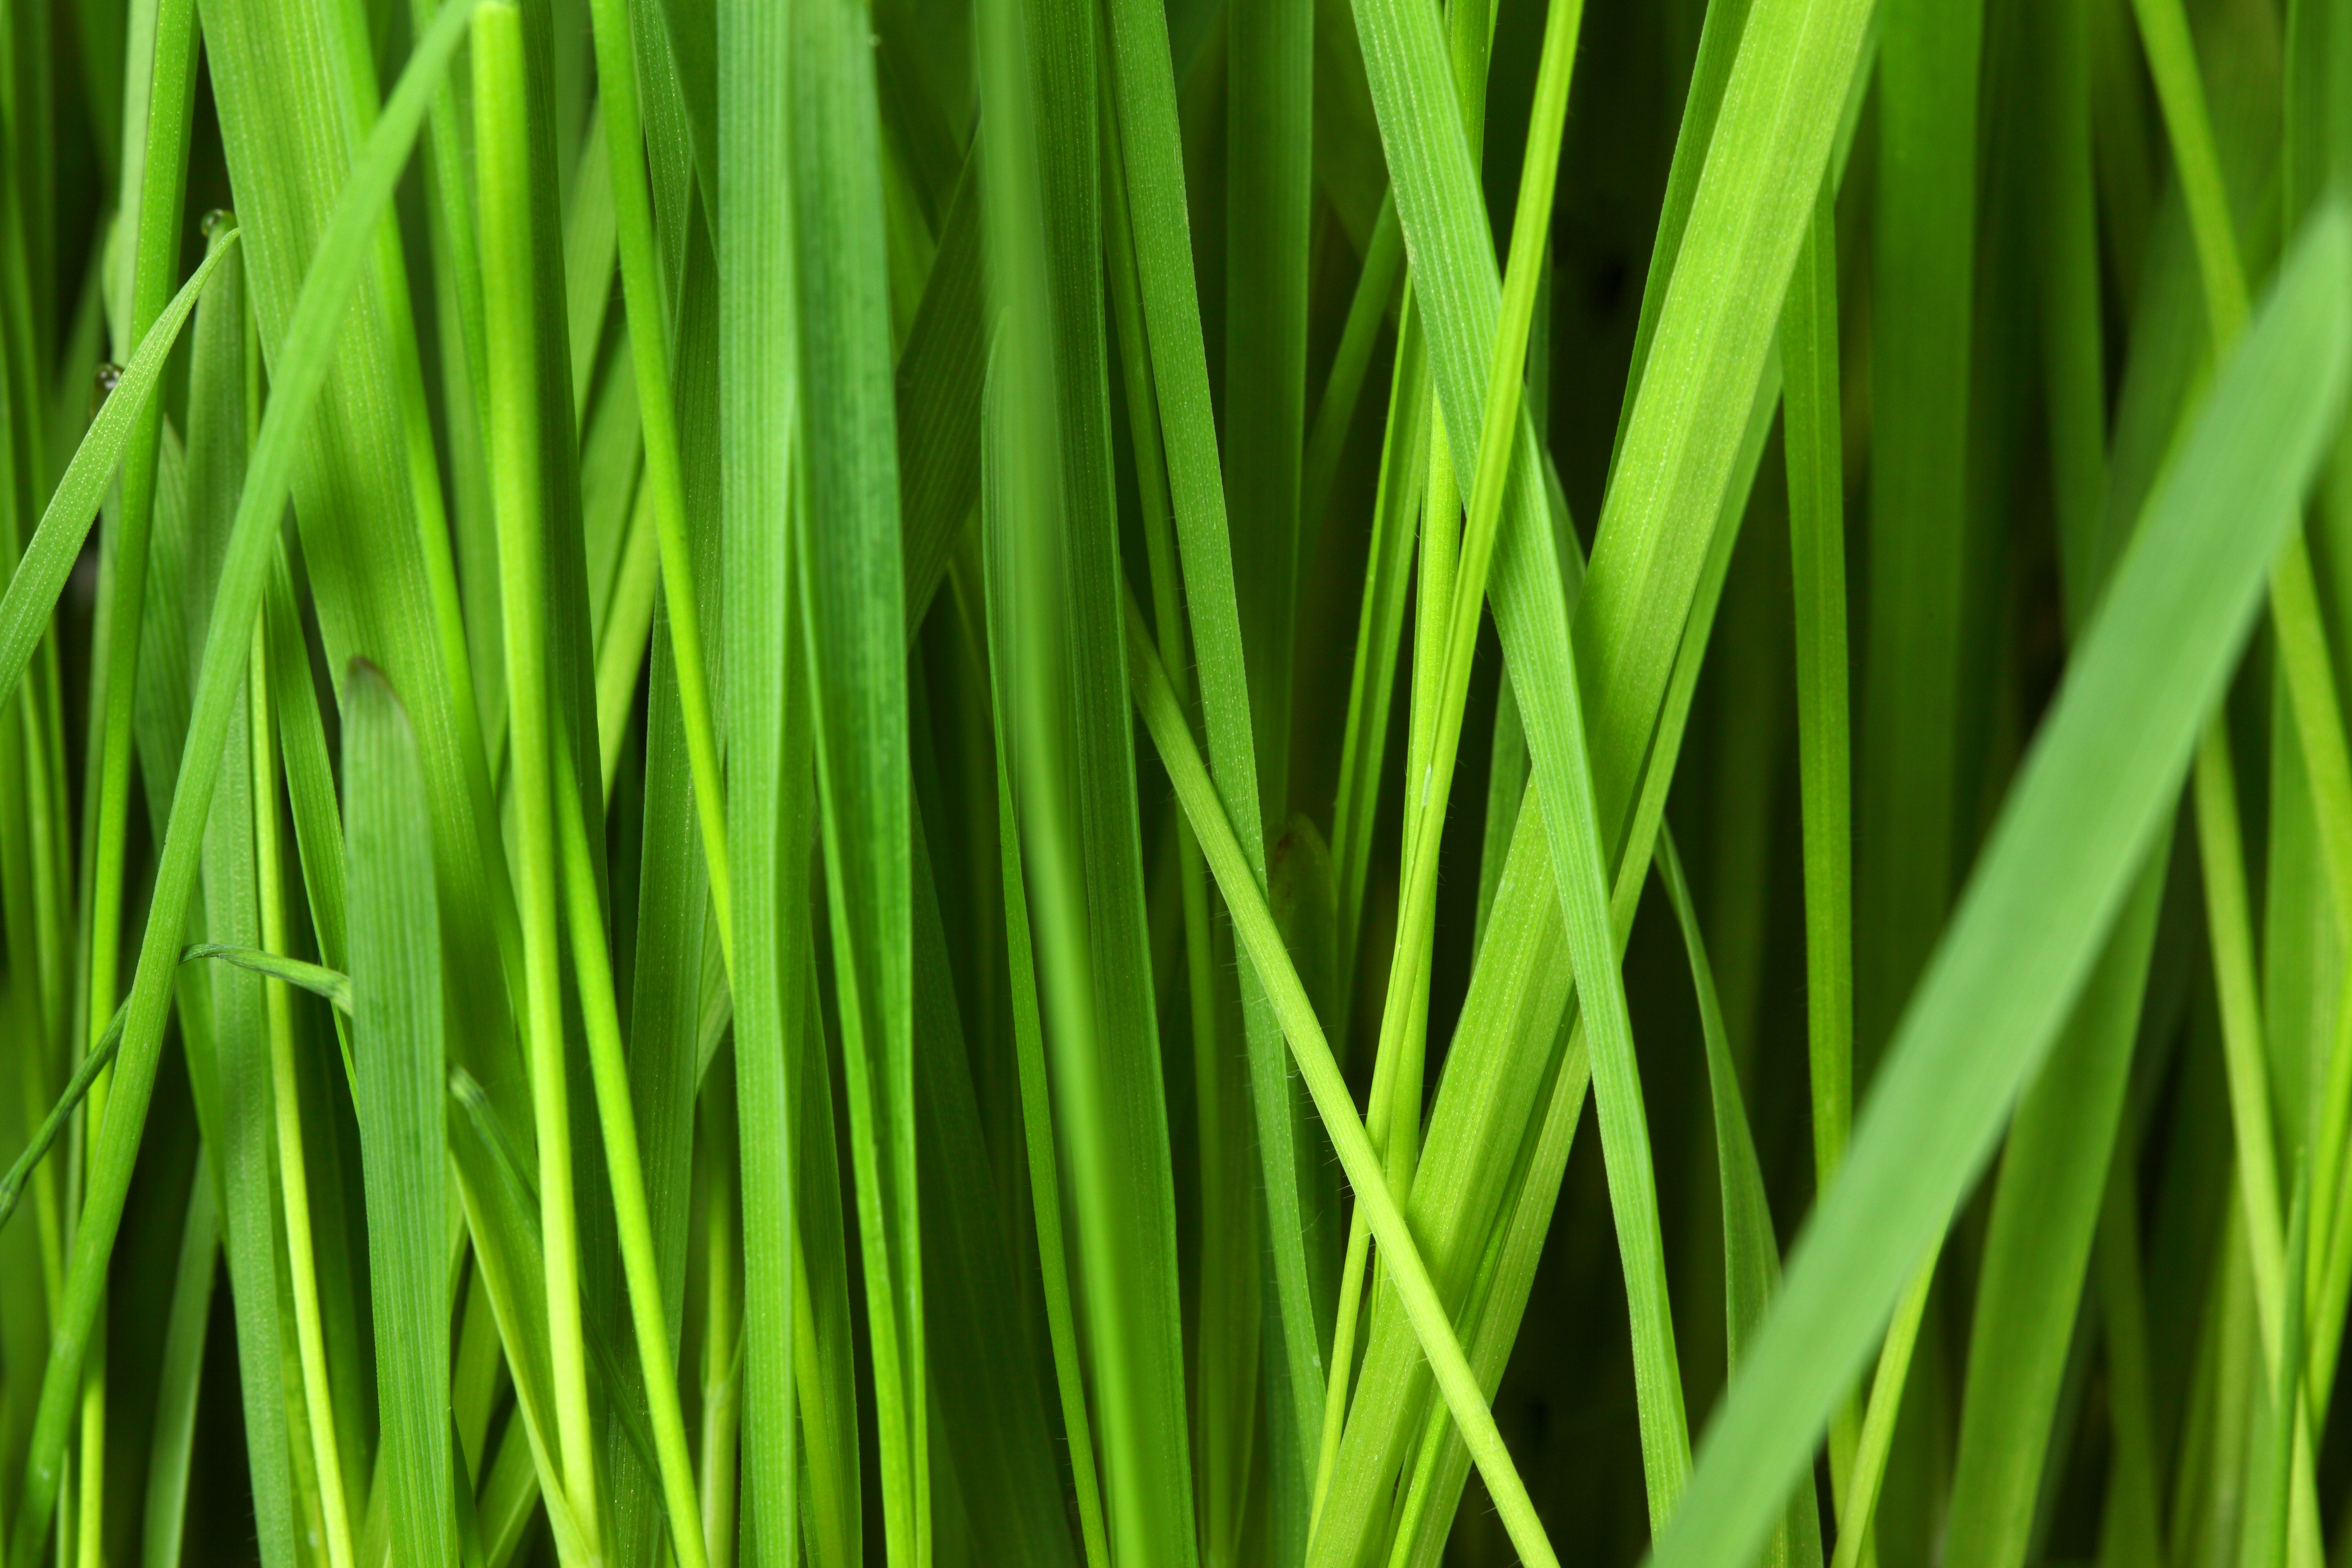 wallpapers/grass.jpg